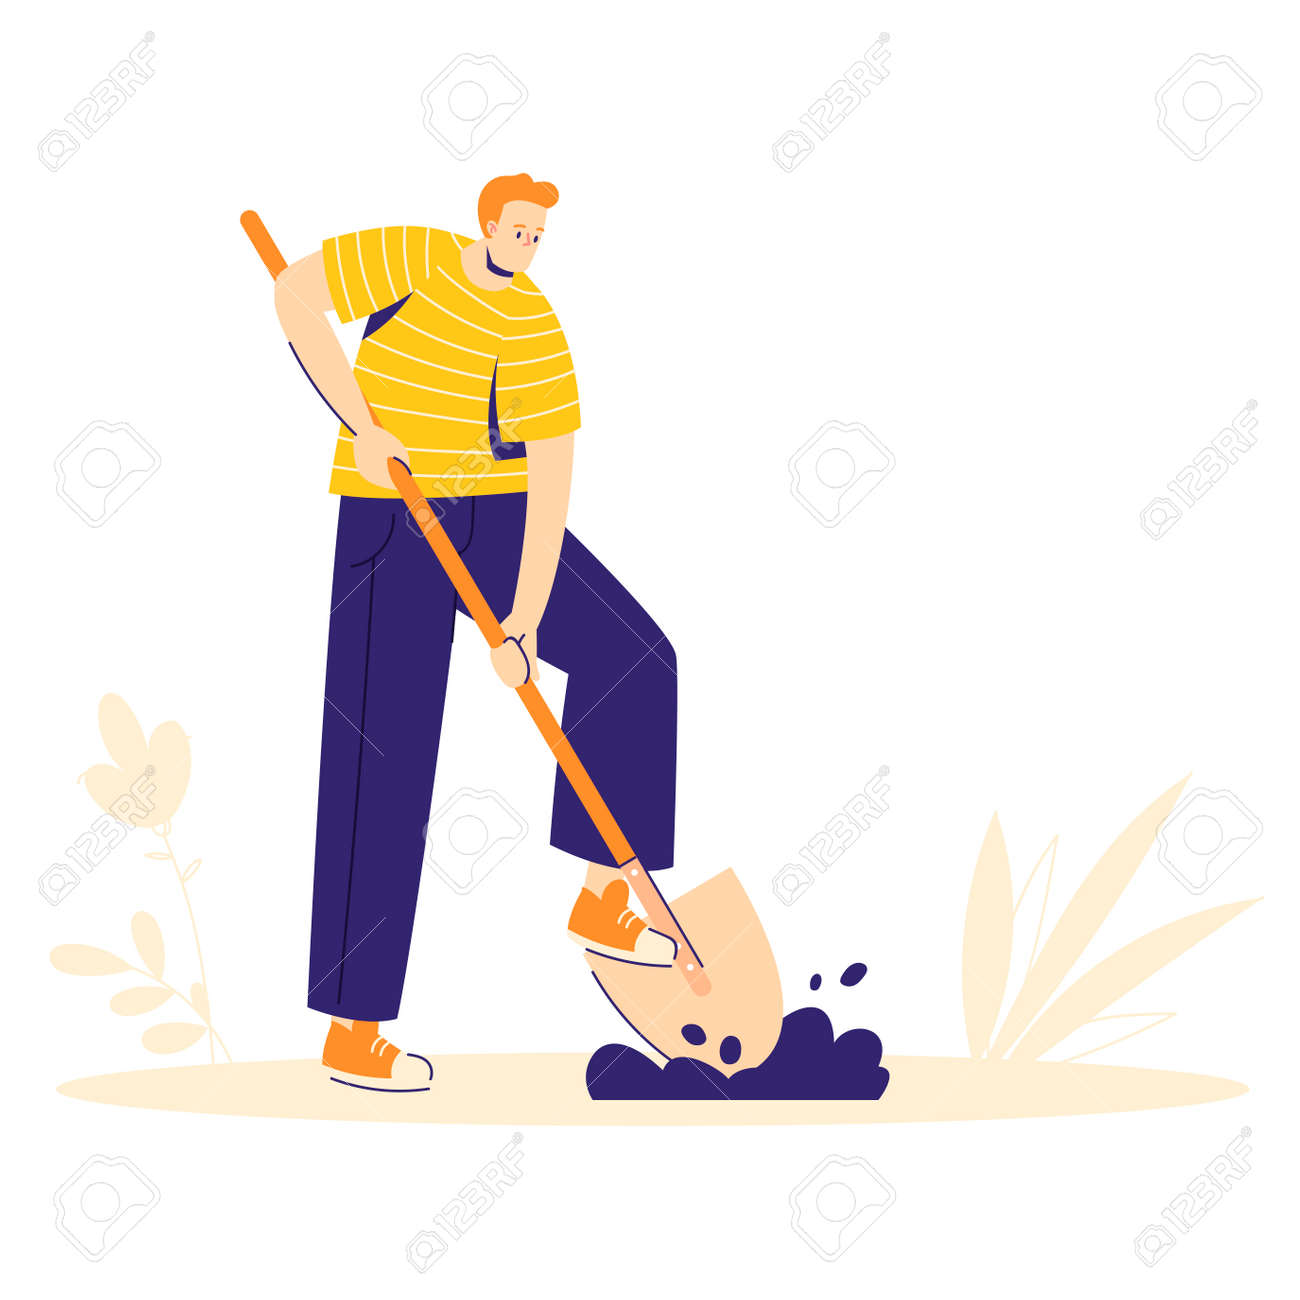 Garden work concept. The man character is digging the ground with a shovel. Hobby gardener. - 170358962